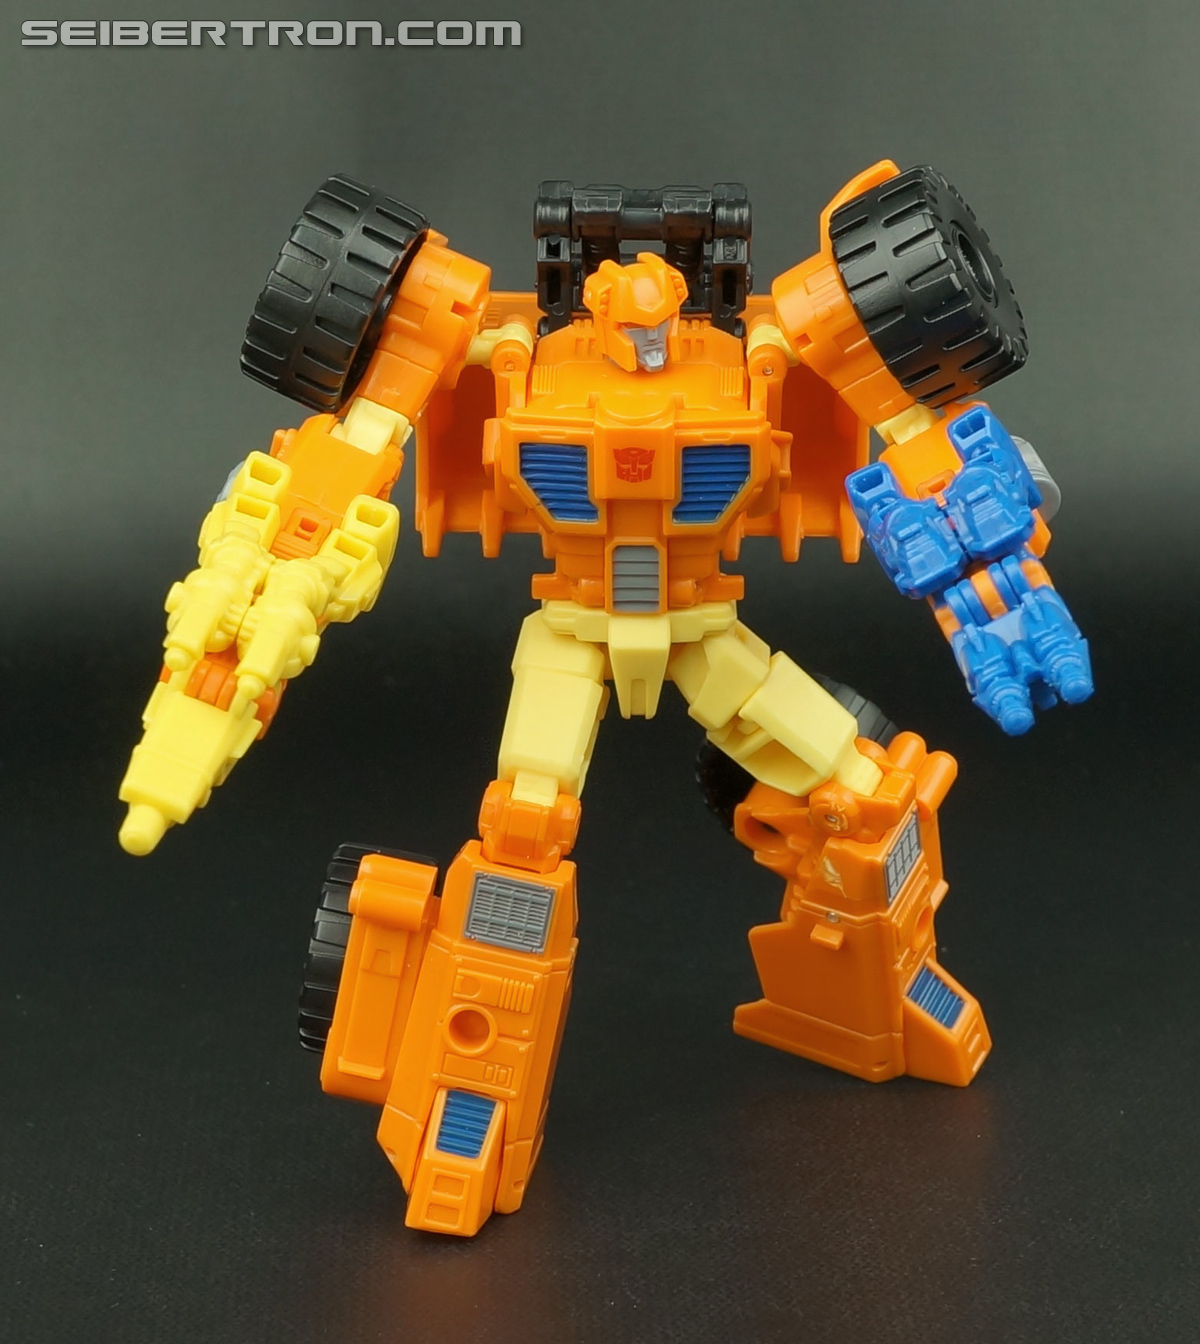 Transformers Generations Caliburst (Tracer) (Image #58 of 63)